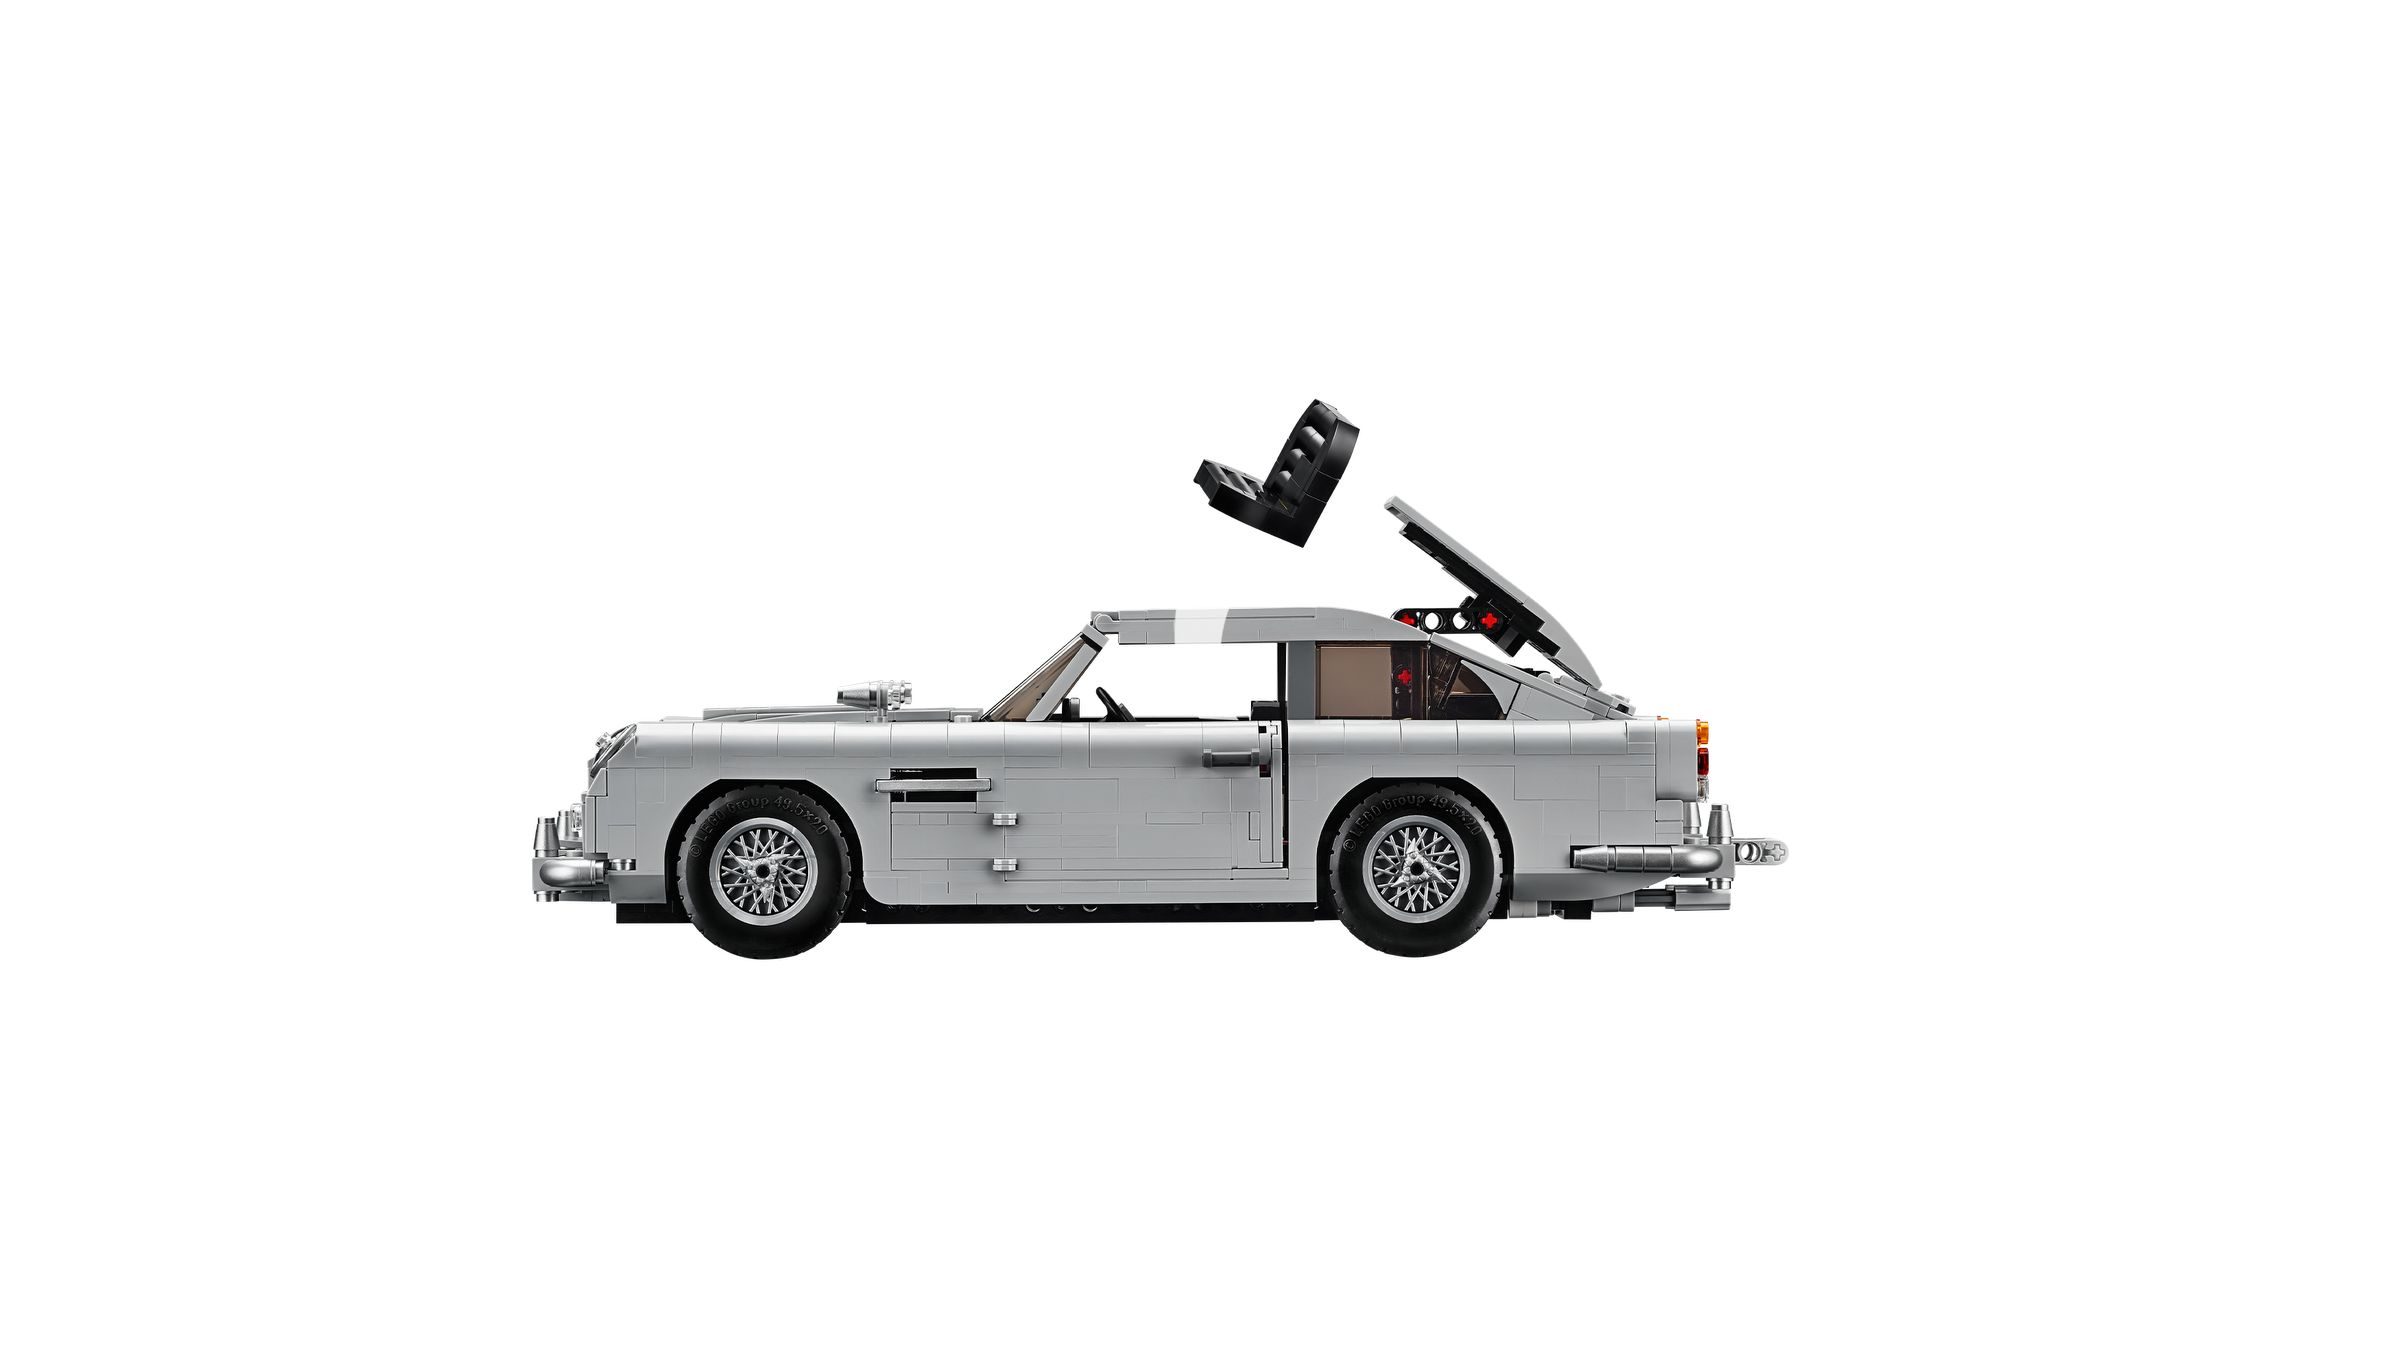 LEGO Advanced Models 10262 James Bond Aston Martin DB5 LEGO_10262_alt3.jpg